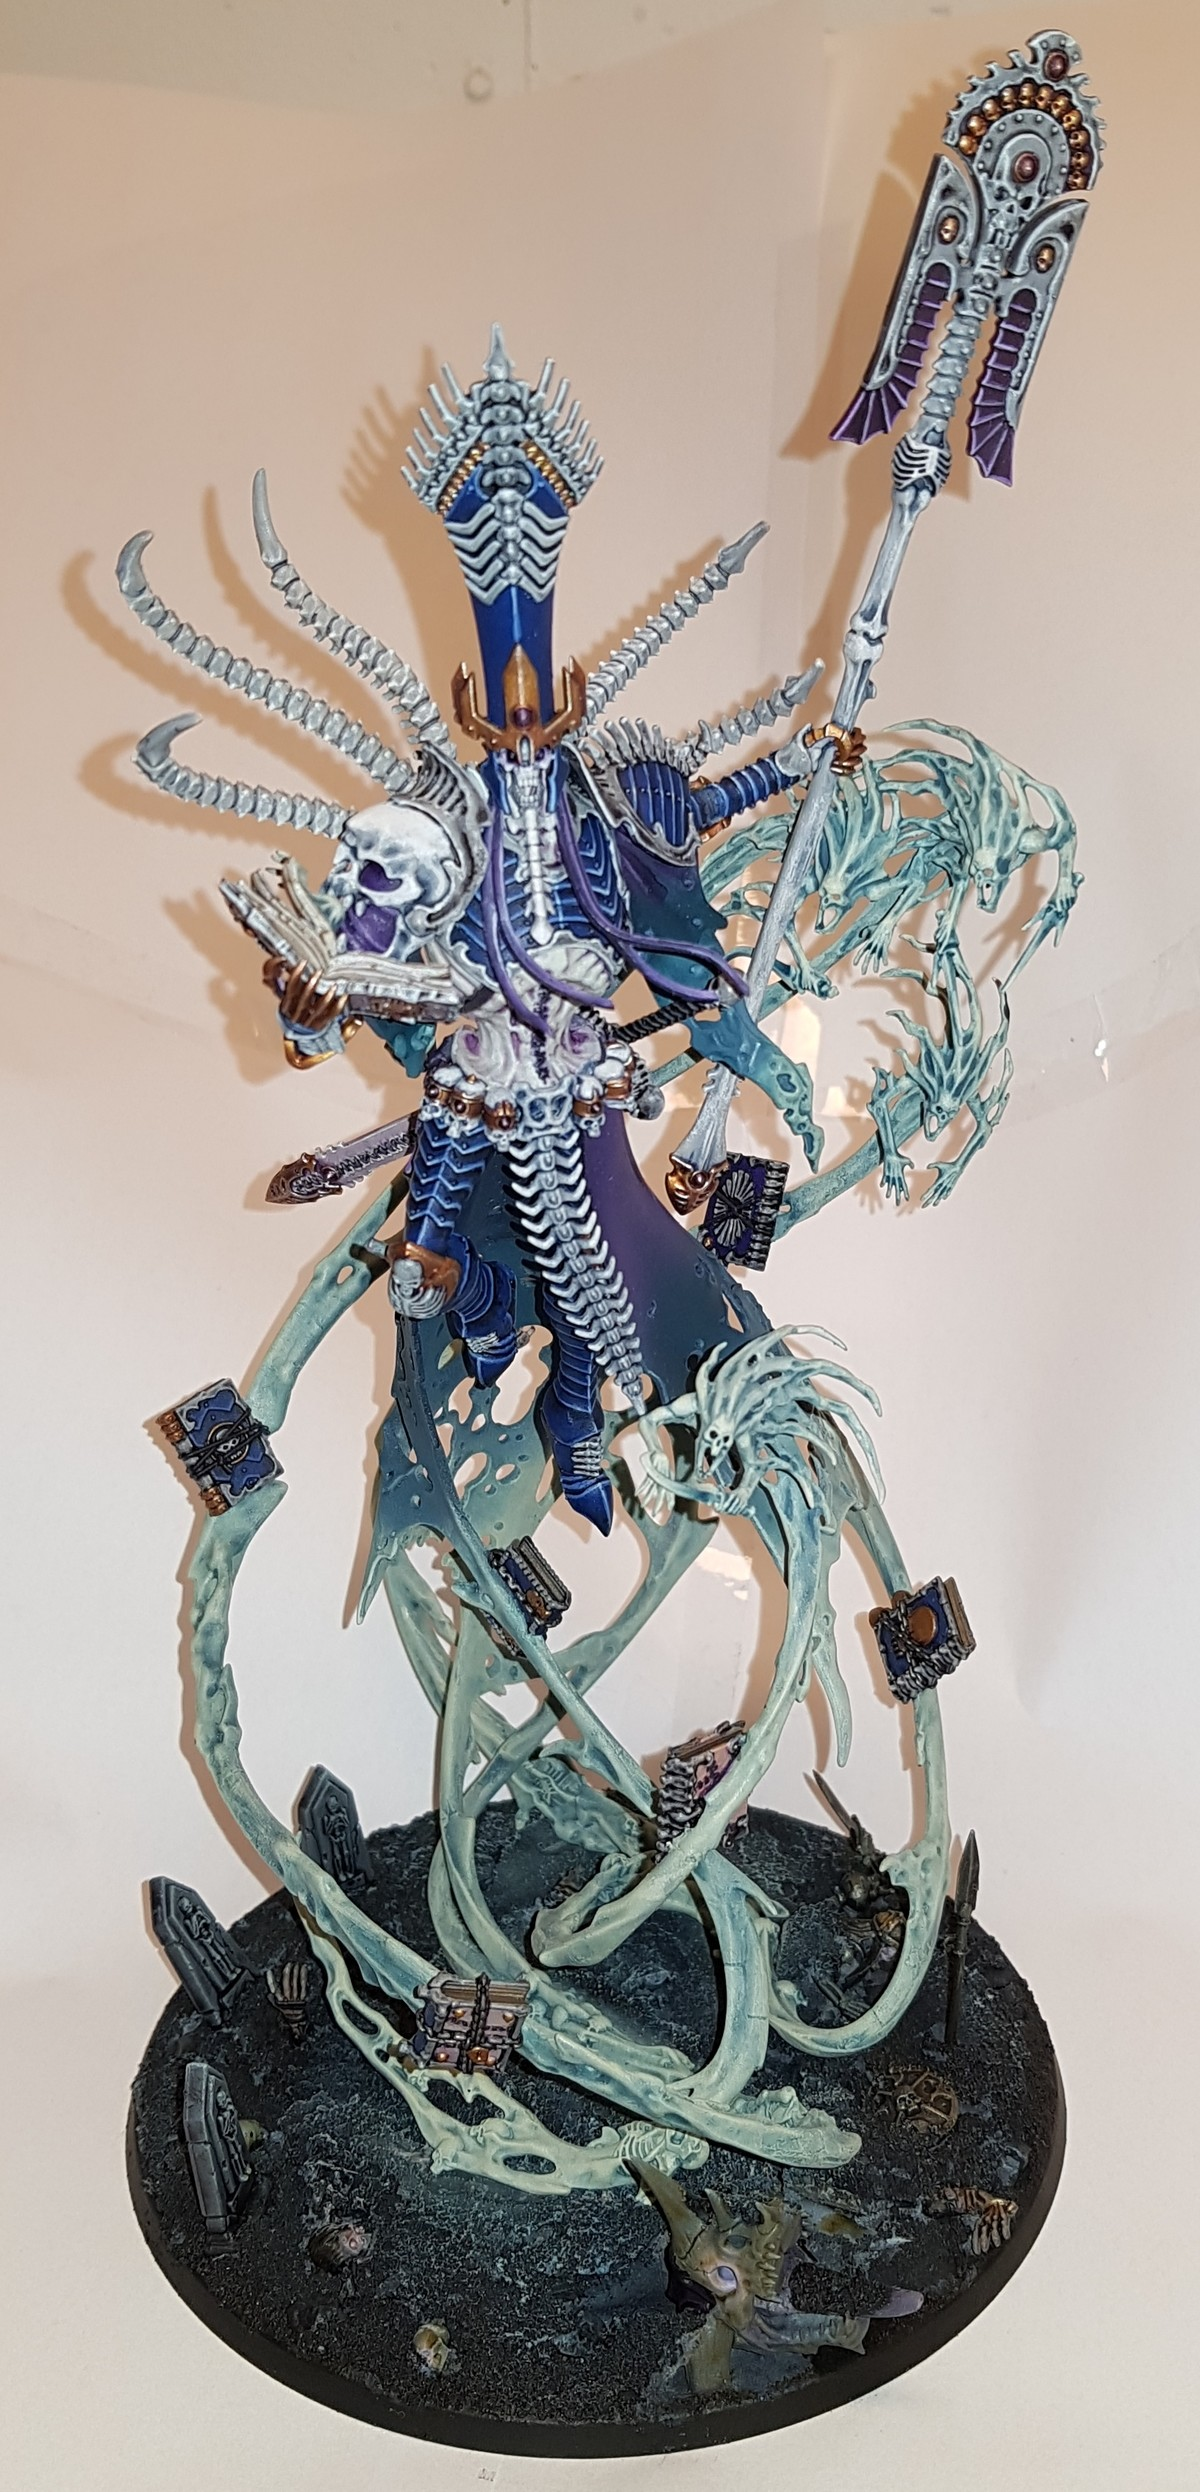 Nagash. Finally finished my Nagash model. Bought it back in 2014, realized my skill level wasn't enough for it at the time, ended up sitting in a box for years.